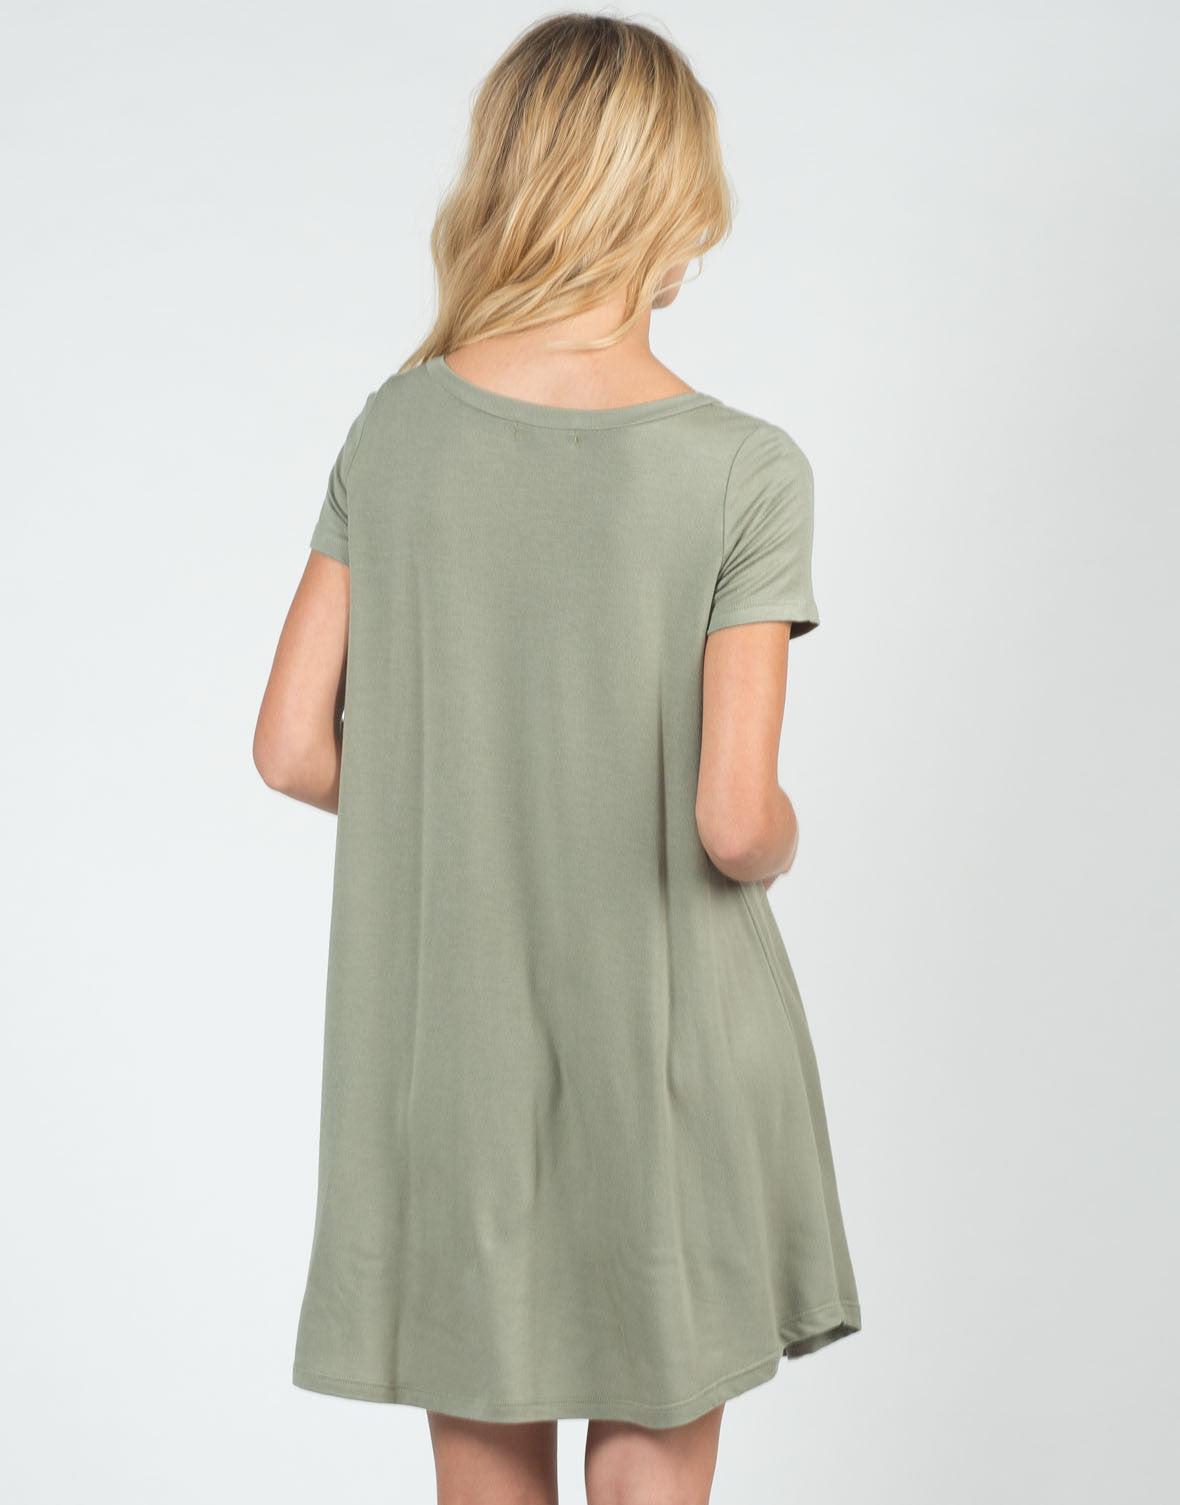 Back View of Super Soft and Flowy Dress